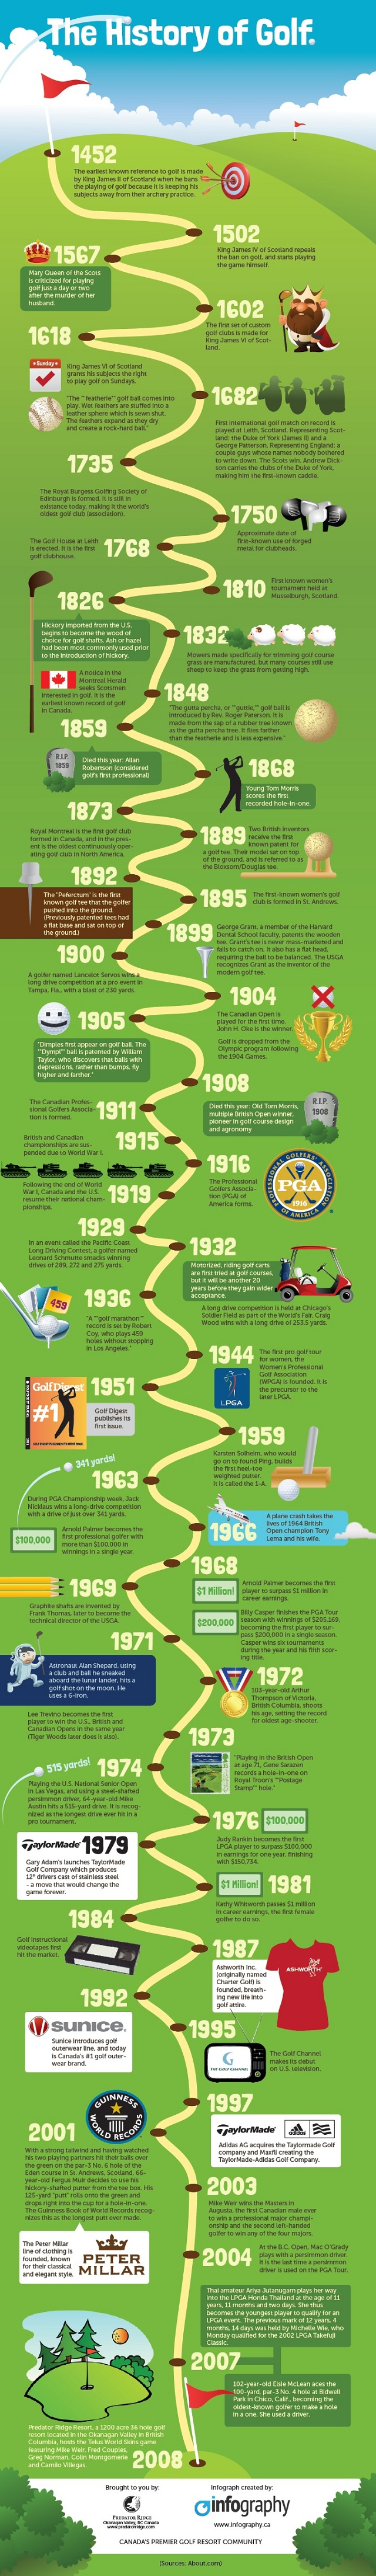 Infographic about the history of golf